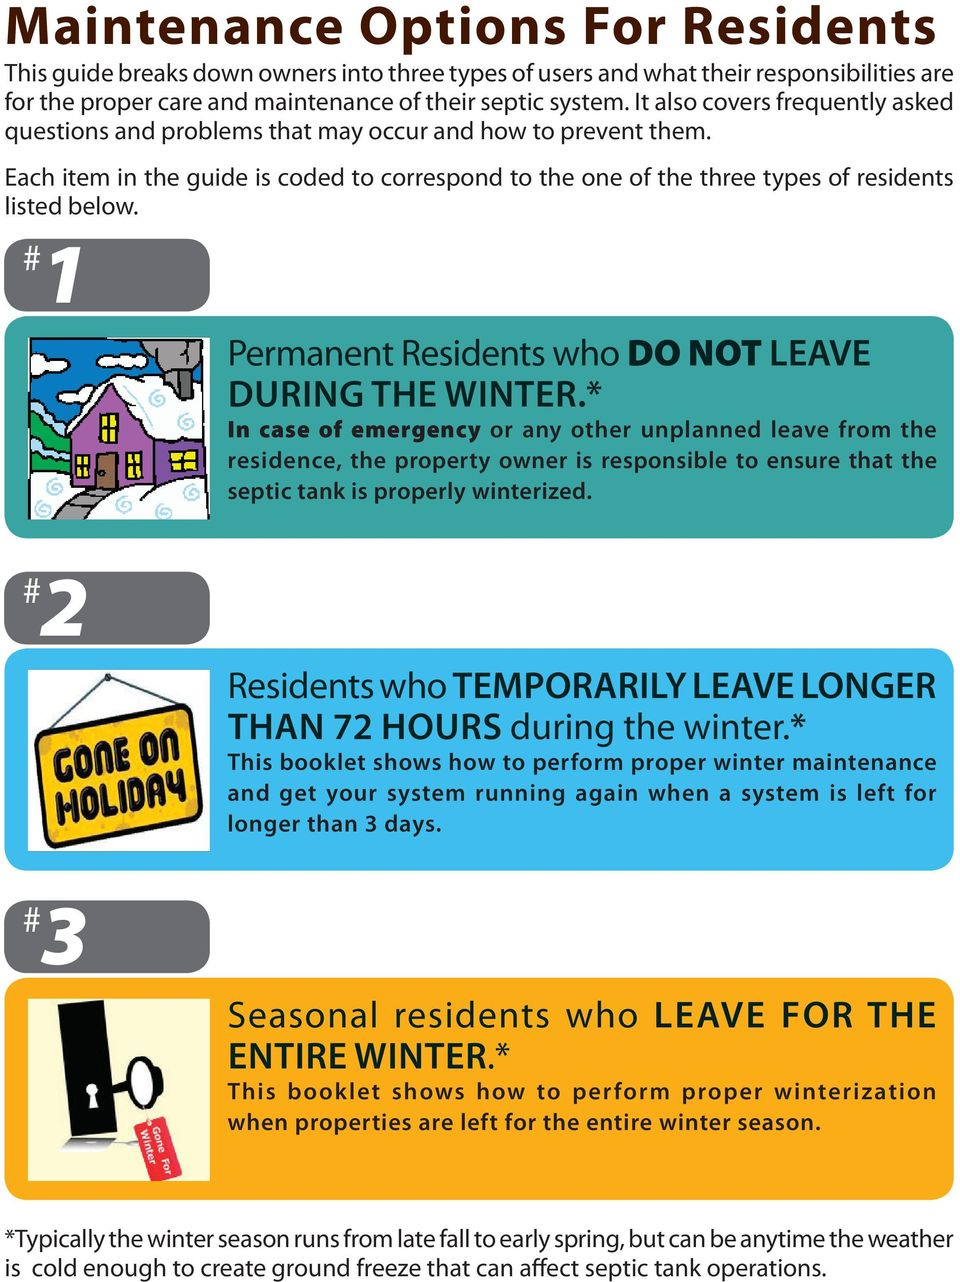 # 1 Permanent Residents who DO NOT LEAVE during the winter.